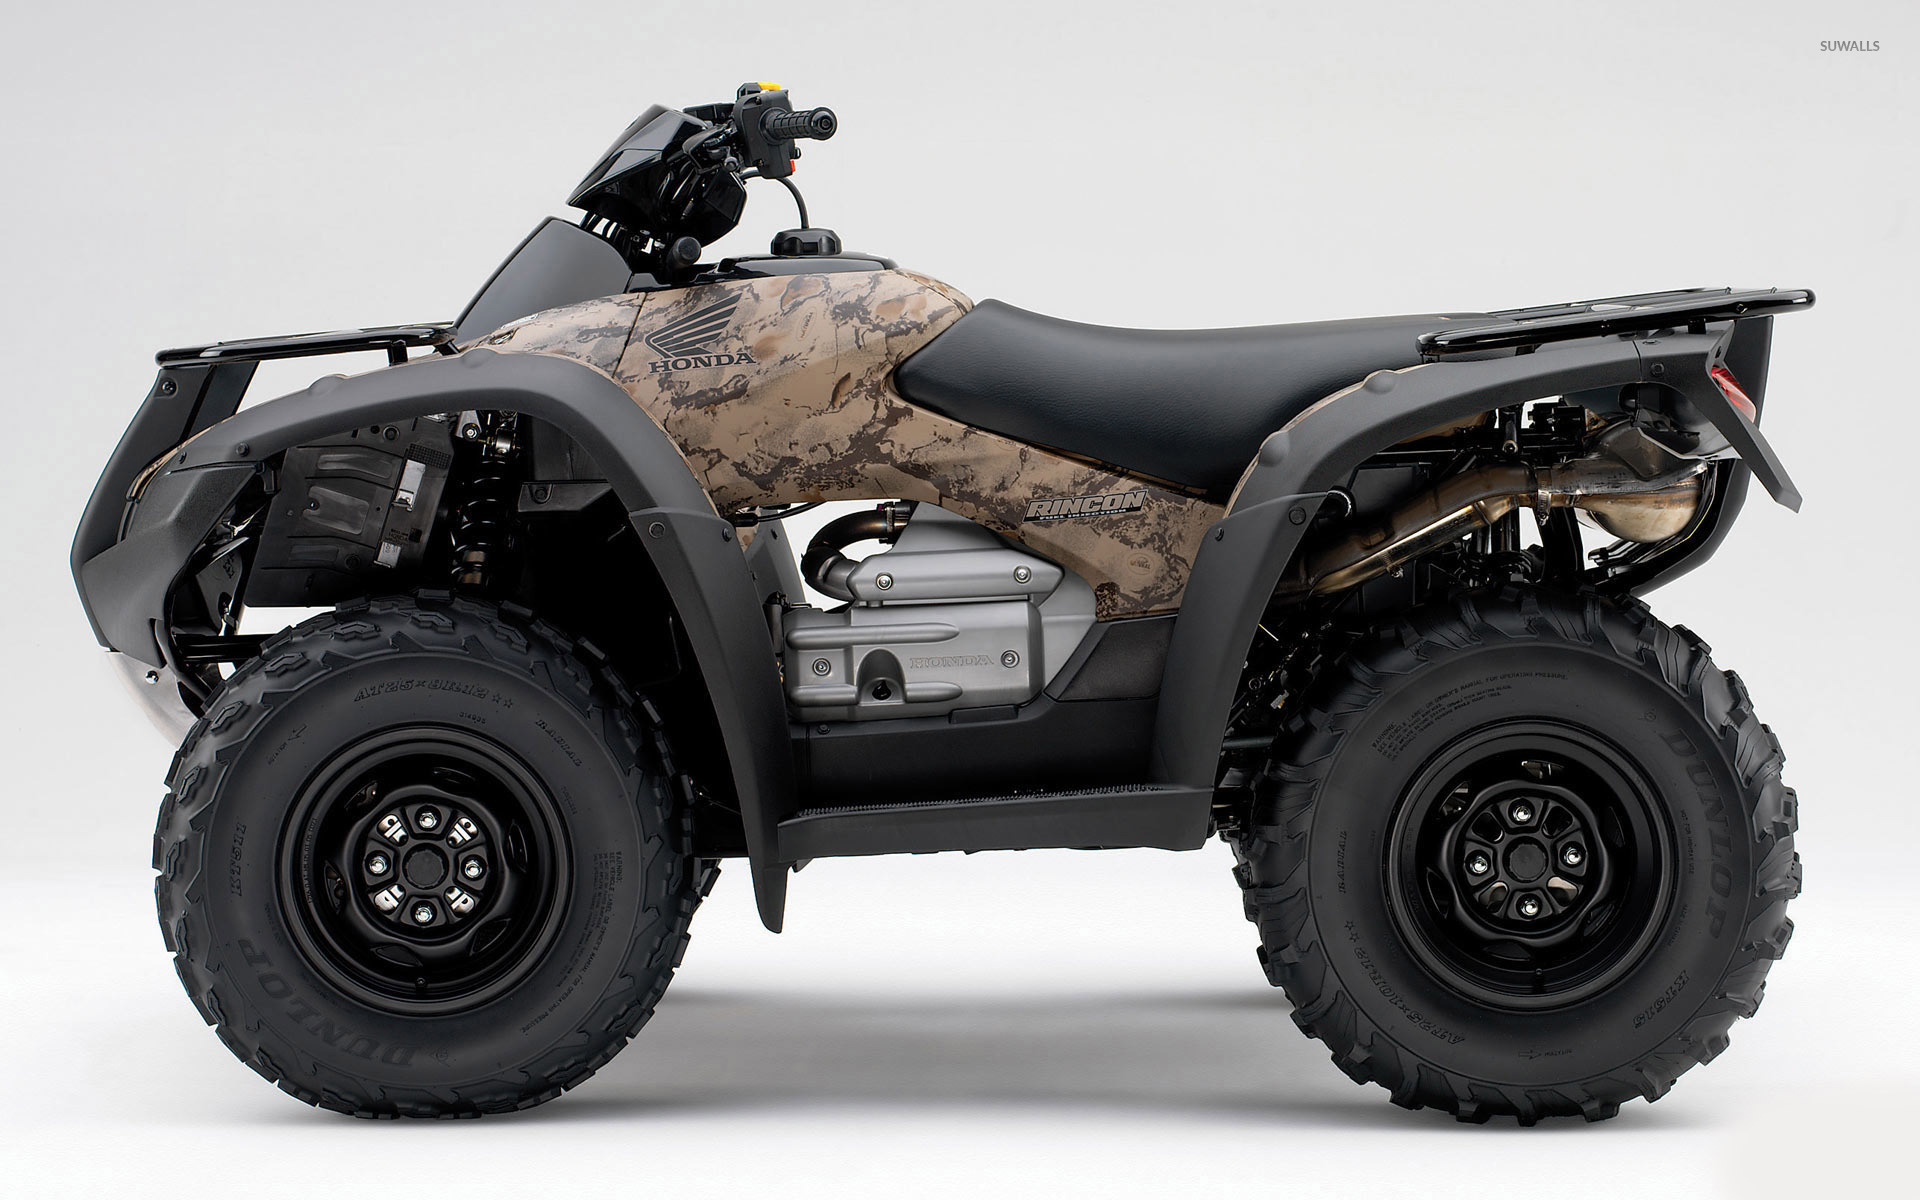 Camouflaged Honda ATV wallpaper   Motorcycle wallpapers   52945 1680x1050